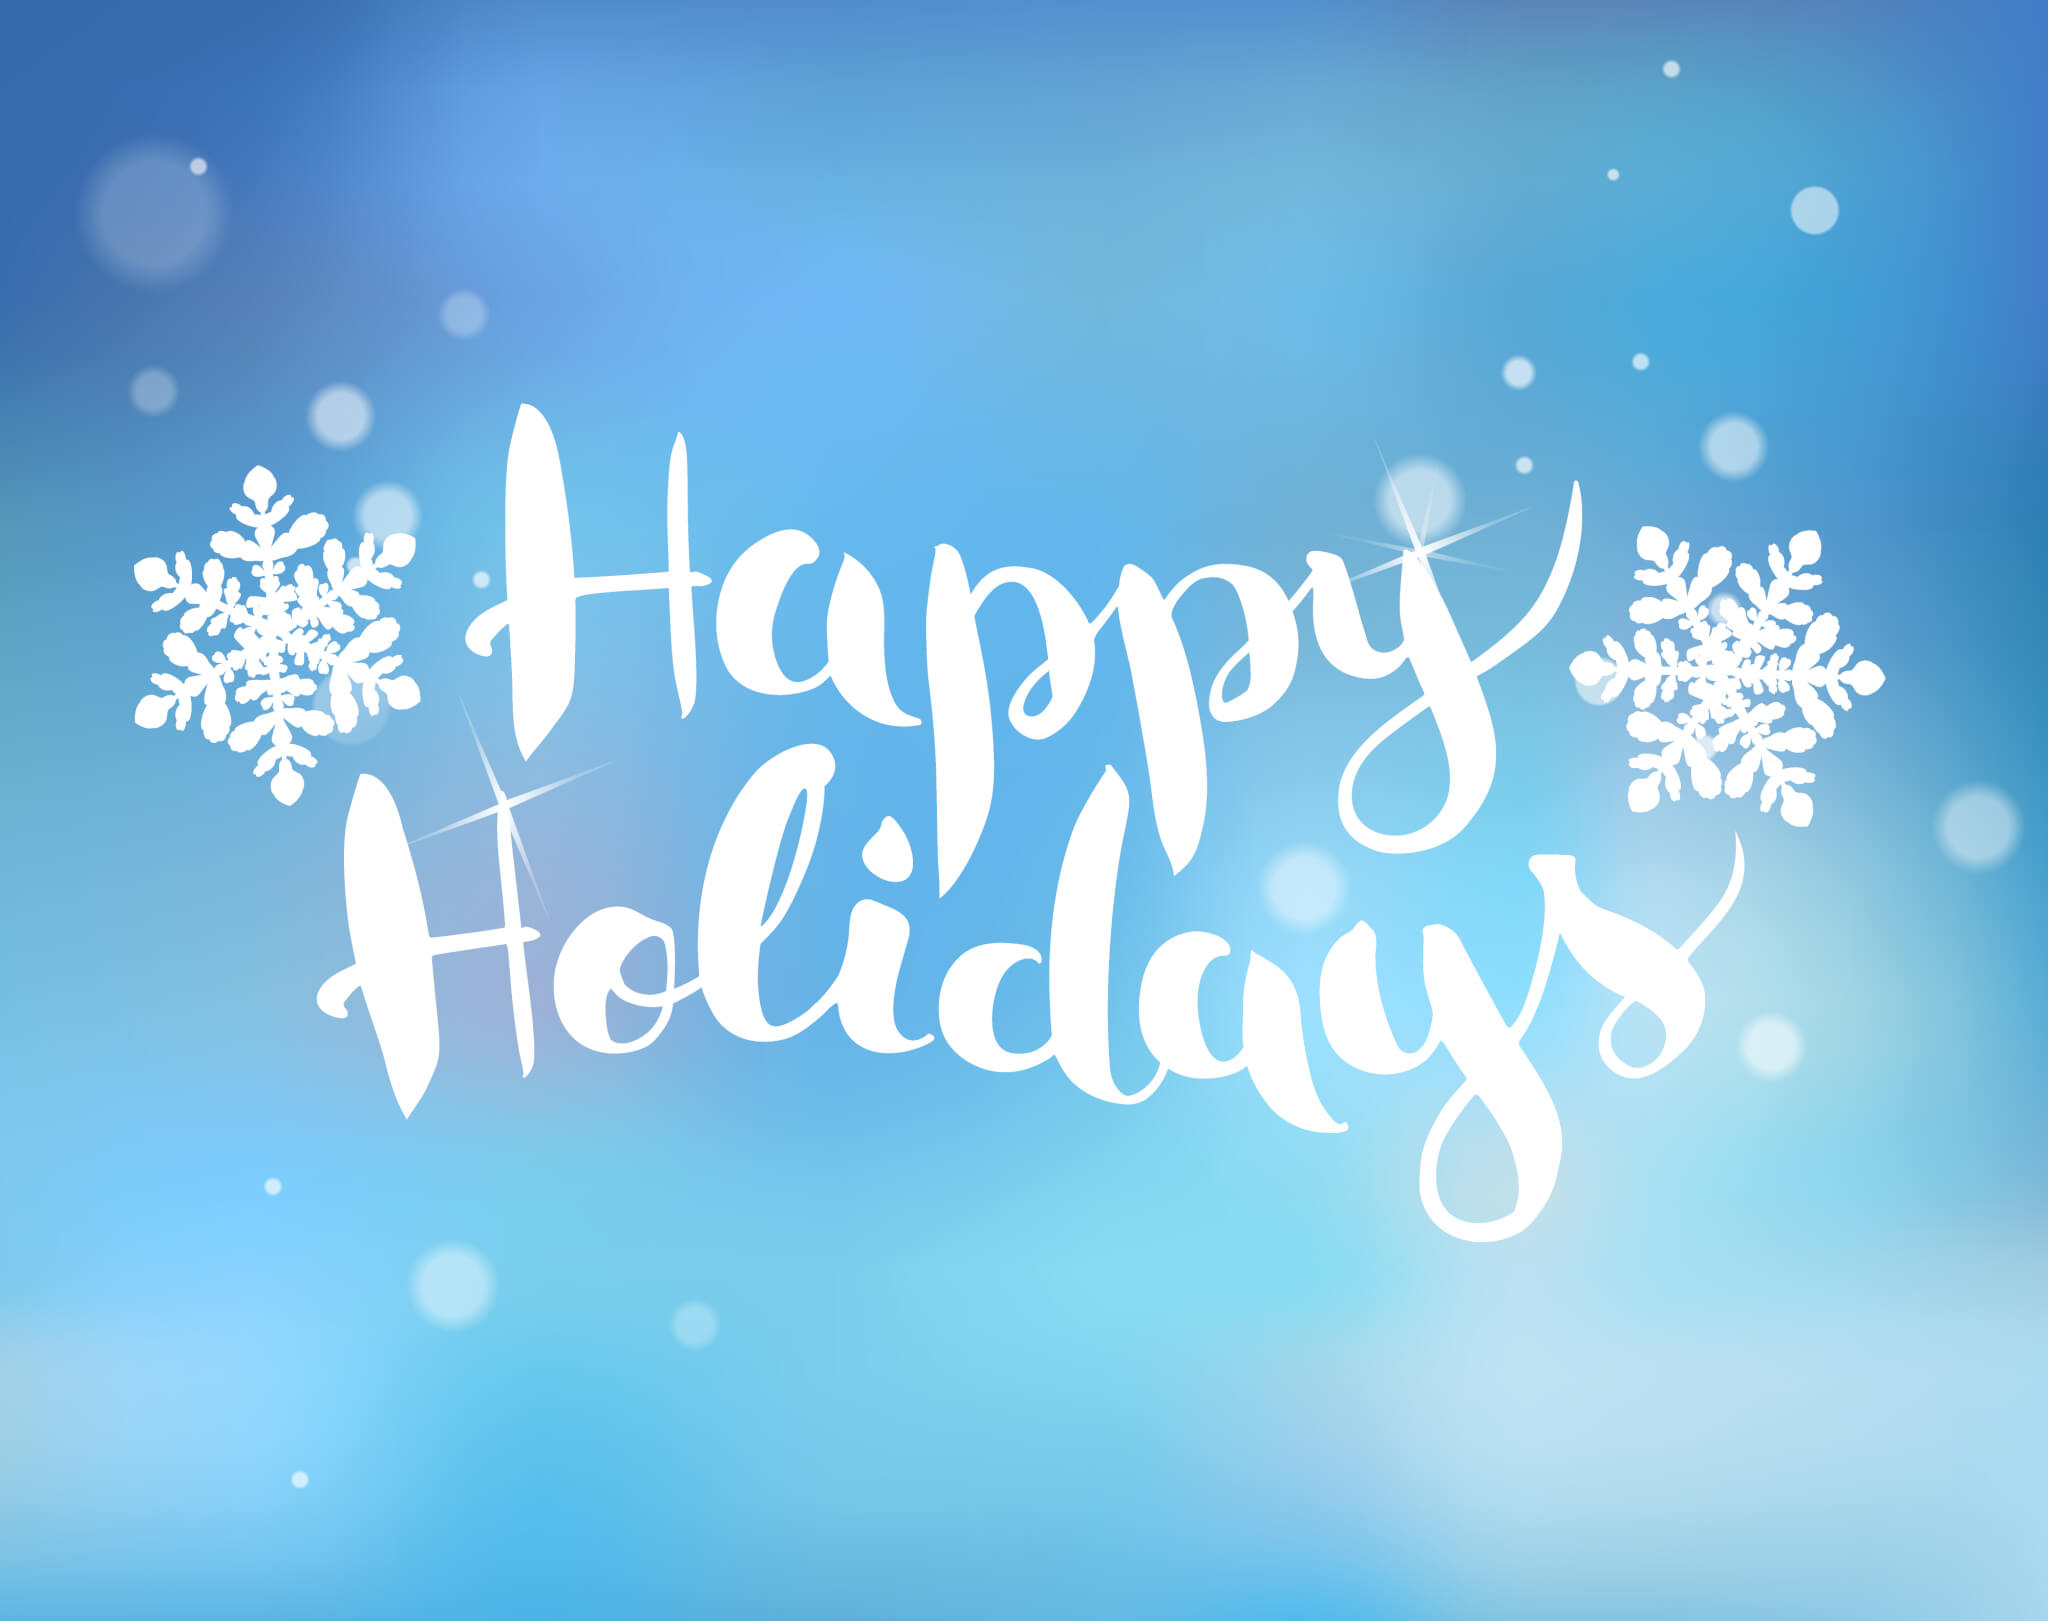 HAPPY HOLIDAYS FROM HOWELL SERVICES